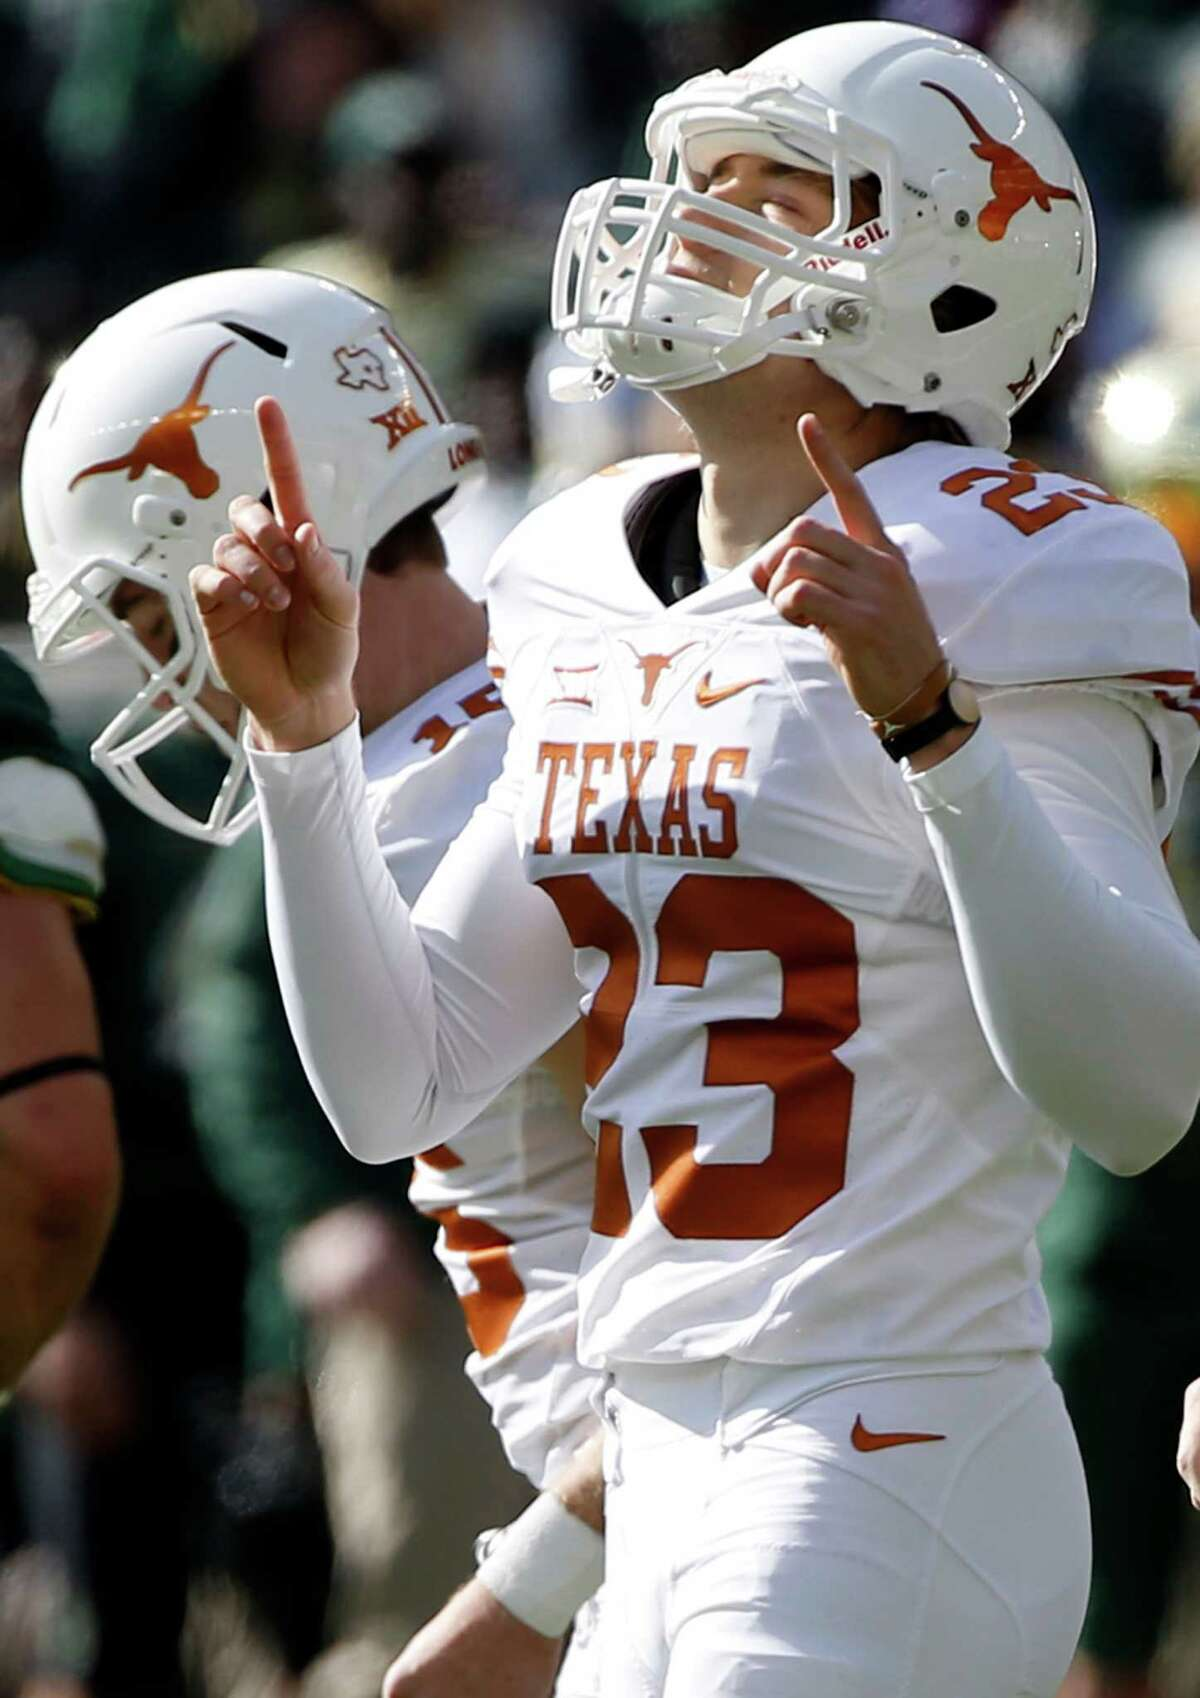 WACO, TX - DECEMBER 5: Nick Rose #23 of the Texas Longhorns points skyward after kicking a field goal against the Baylor Bears in the first half at McLane Stadium on December 5, 2015 in Waco, Texas.